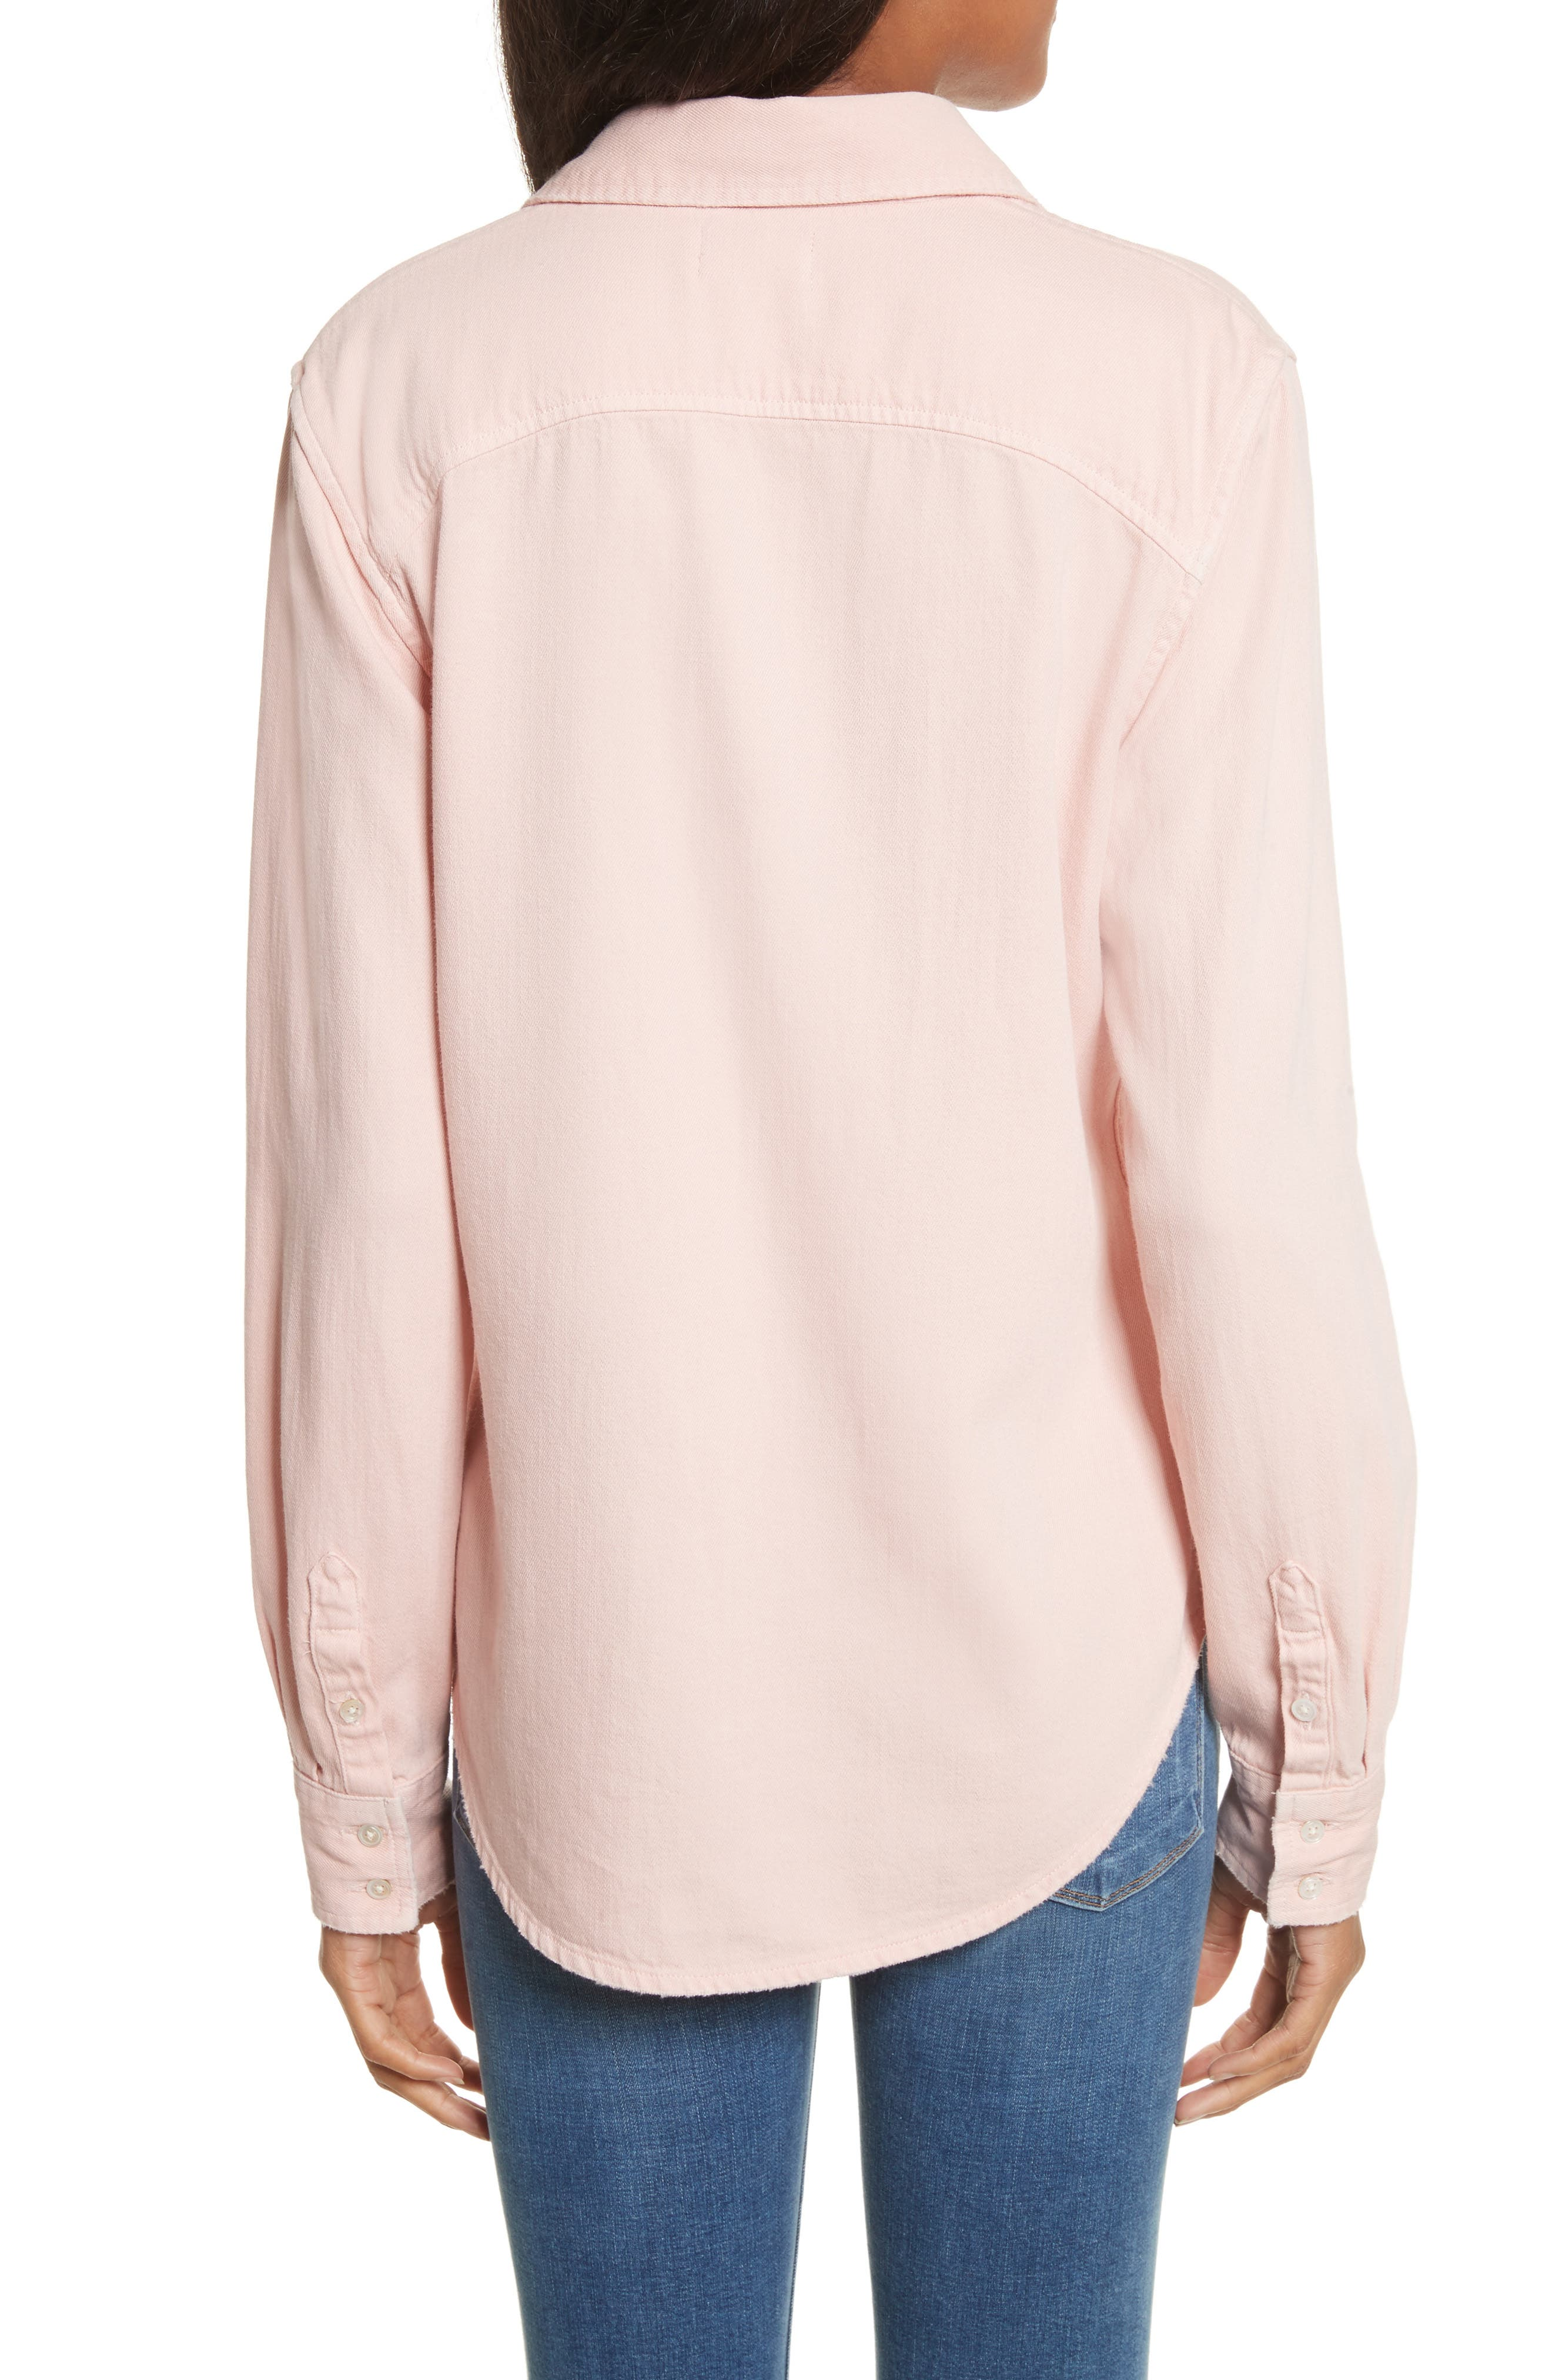 Denim Military Shirt,                             Alternate thumbnail 2, color,                             Faded Light Pink Exclusive